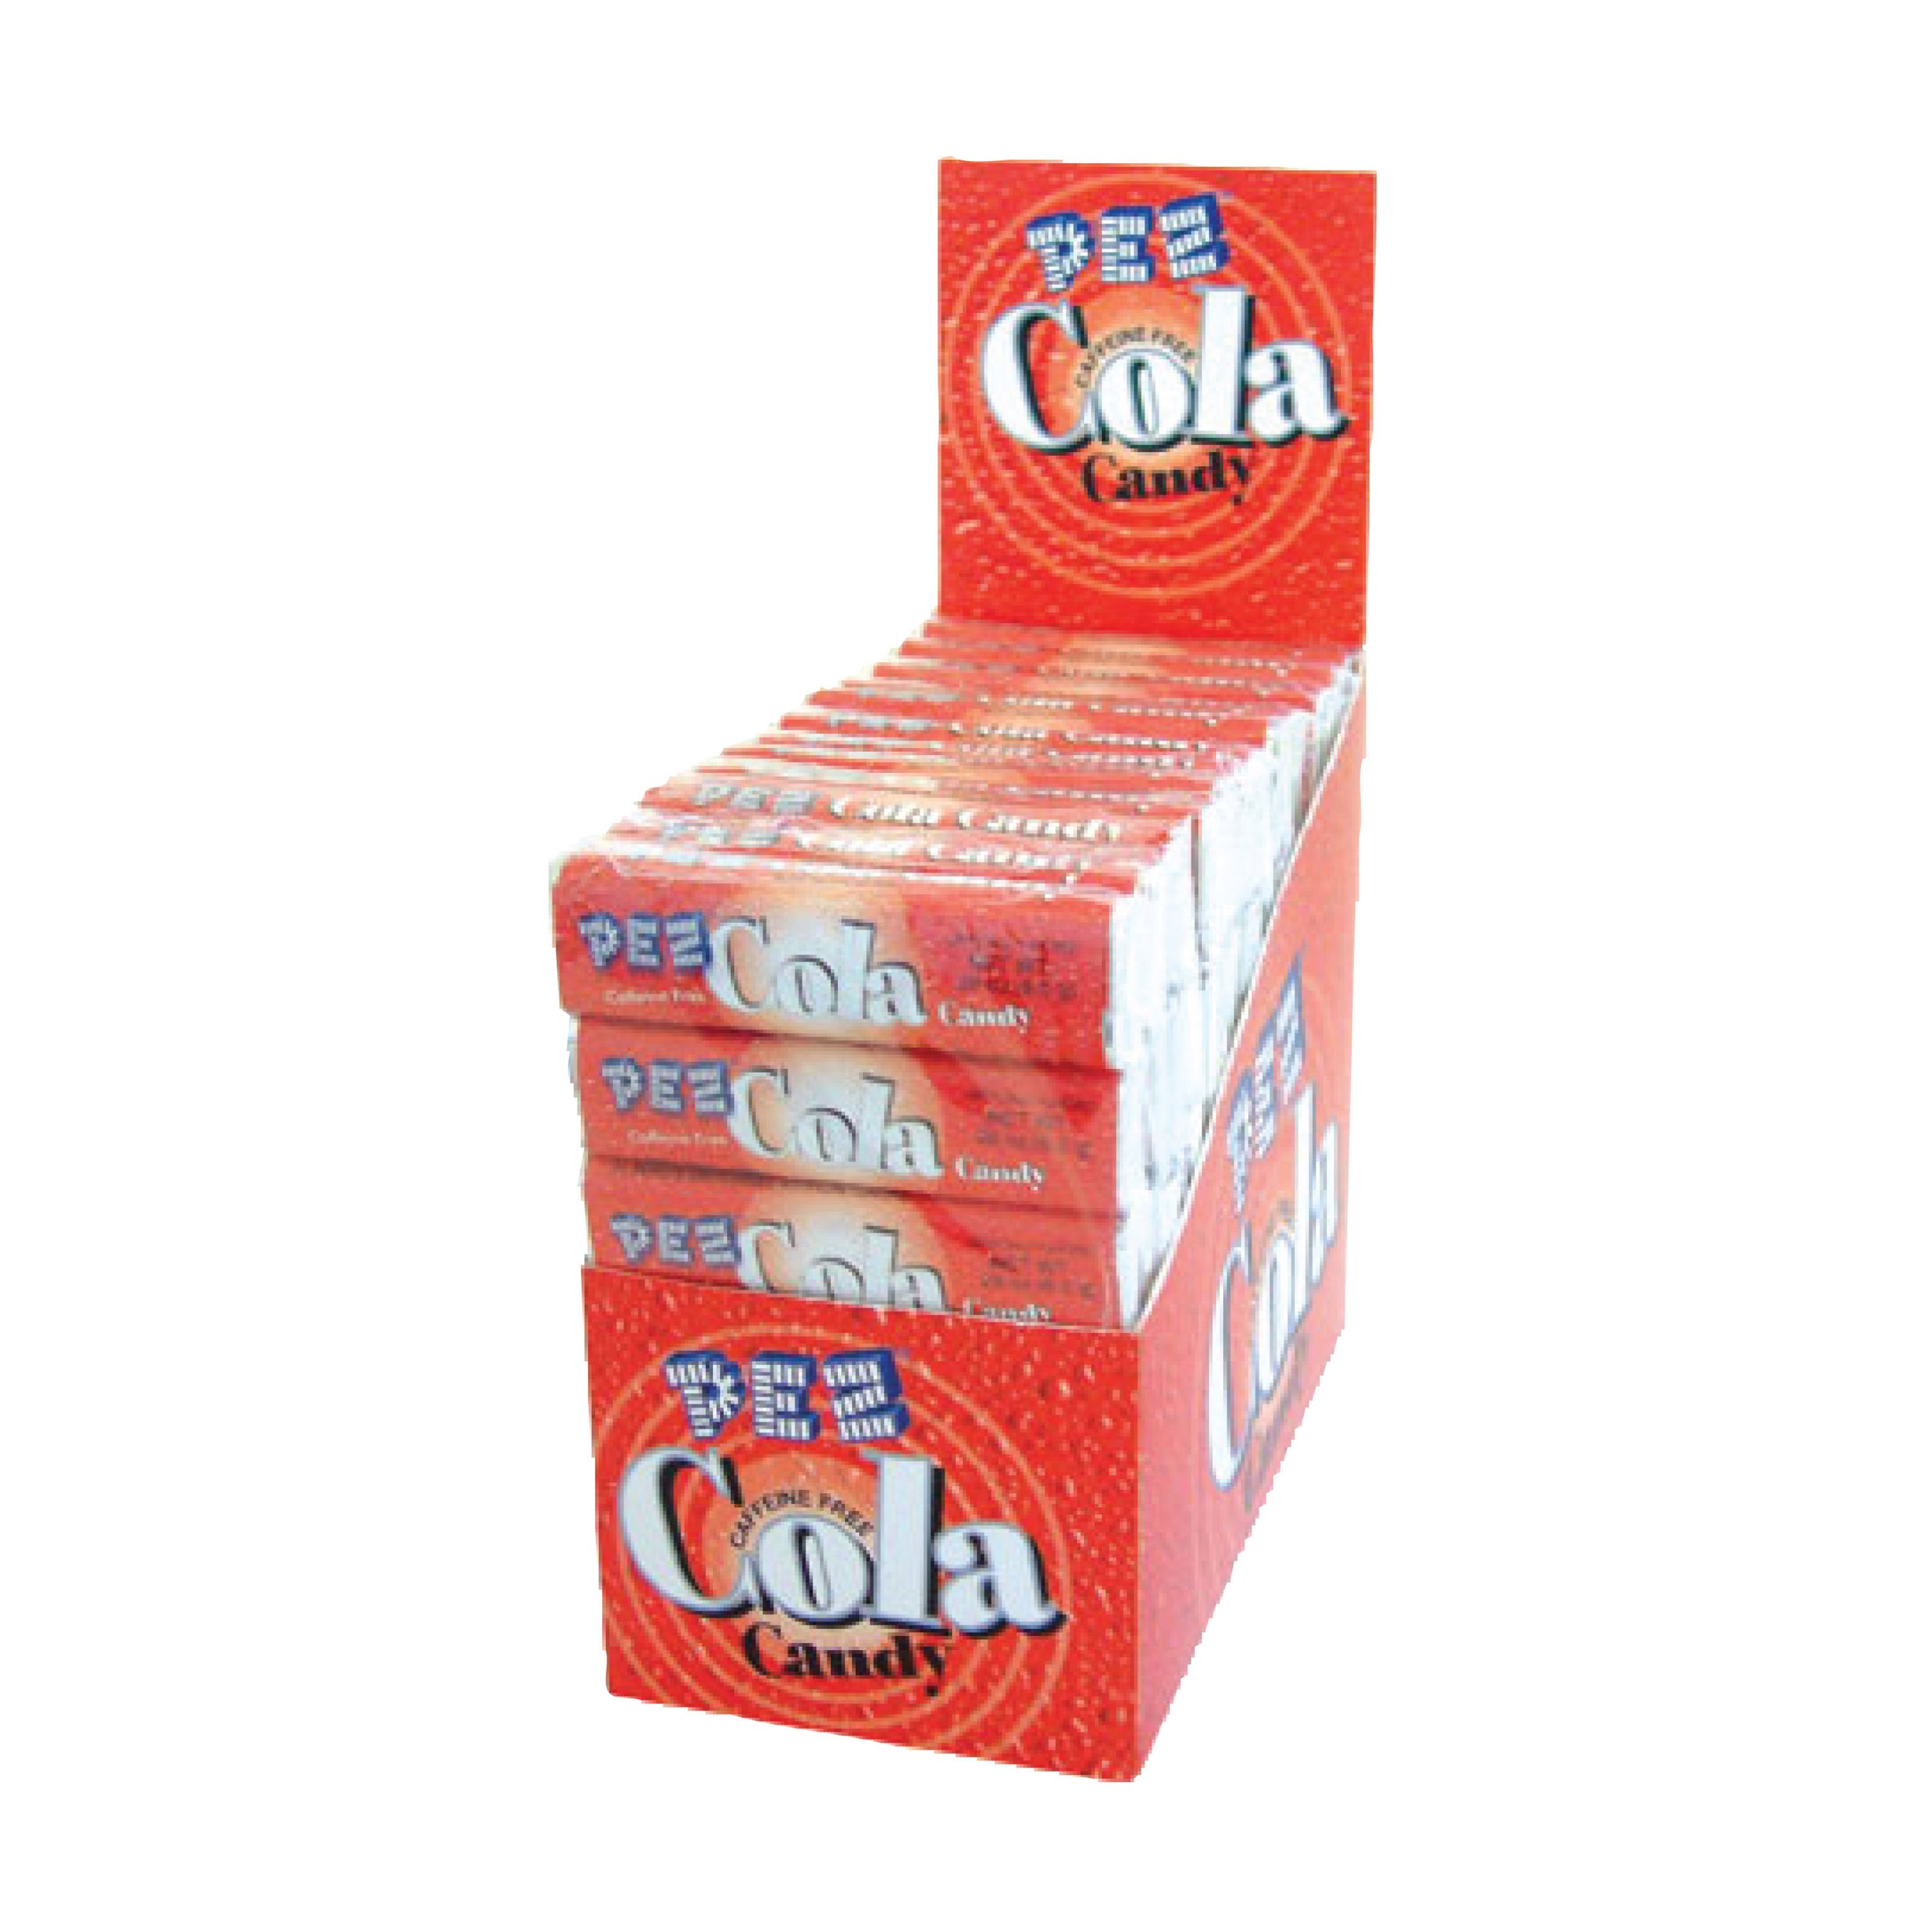 PEZ Candy 6-pack Cola Candy Rolls, box of 12 packs